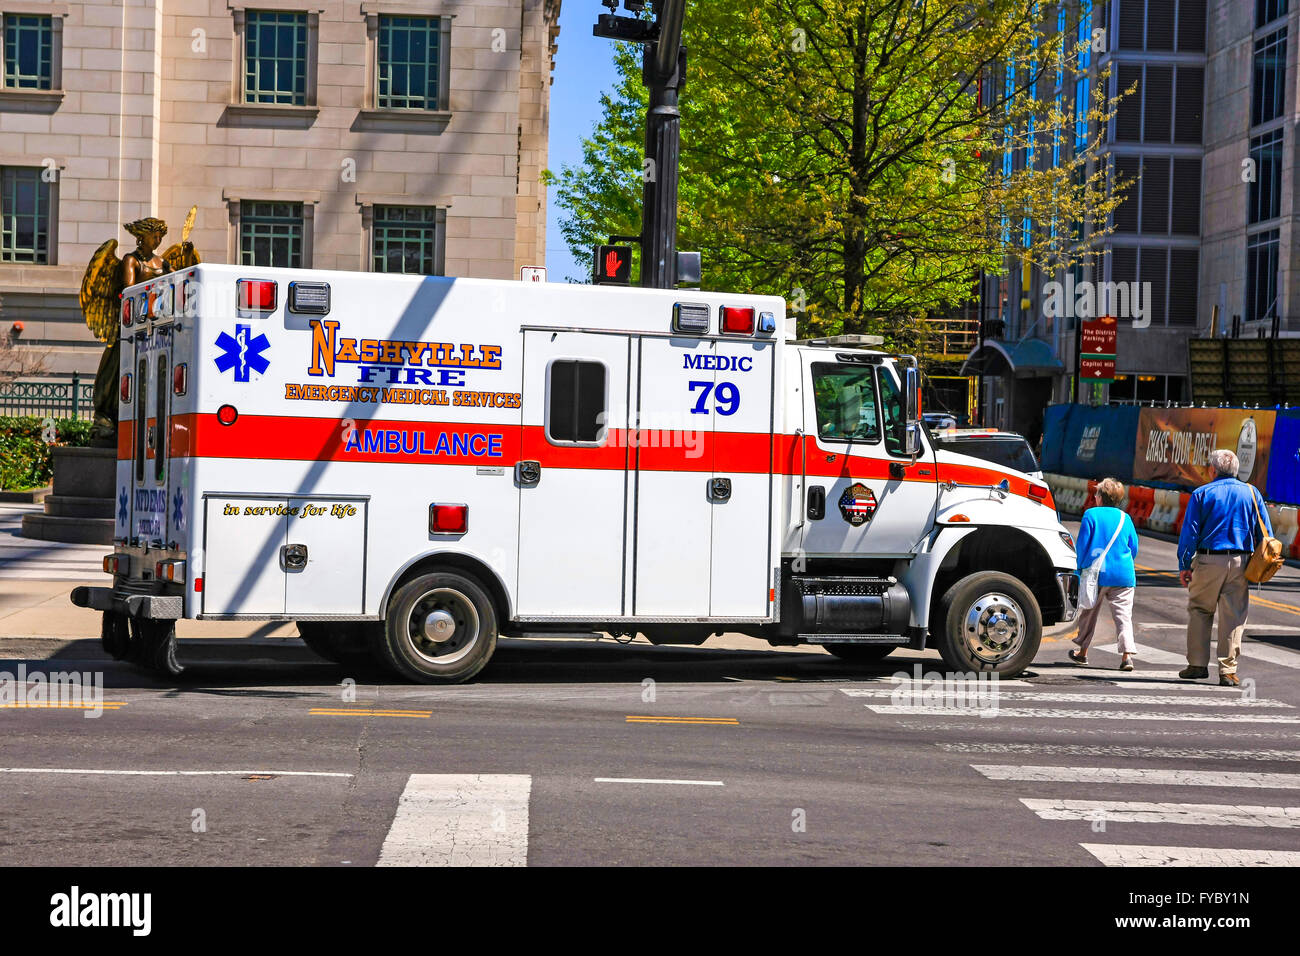 Nashville Fire Dept EMT ambulance attending an accident outside the Symphony building - Stock Image